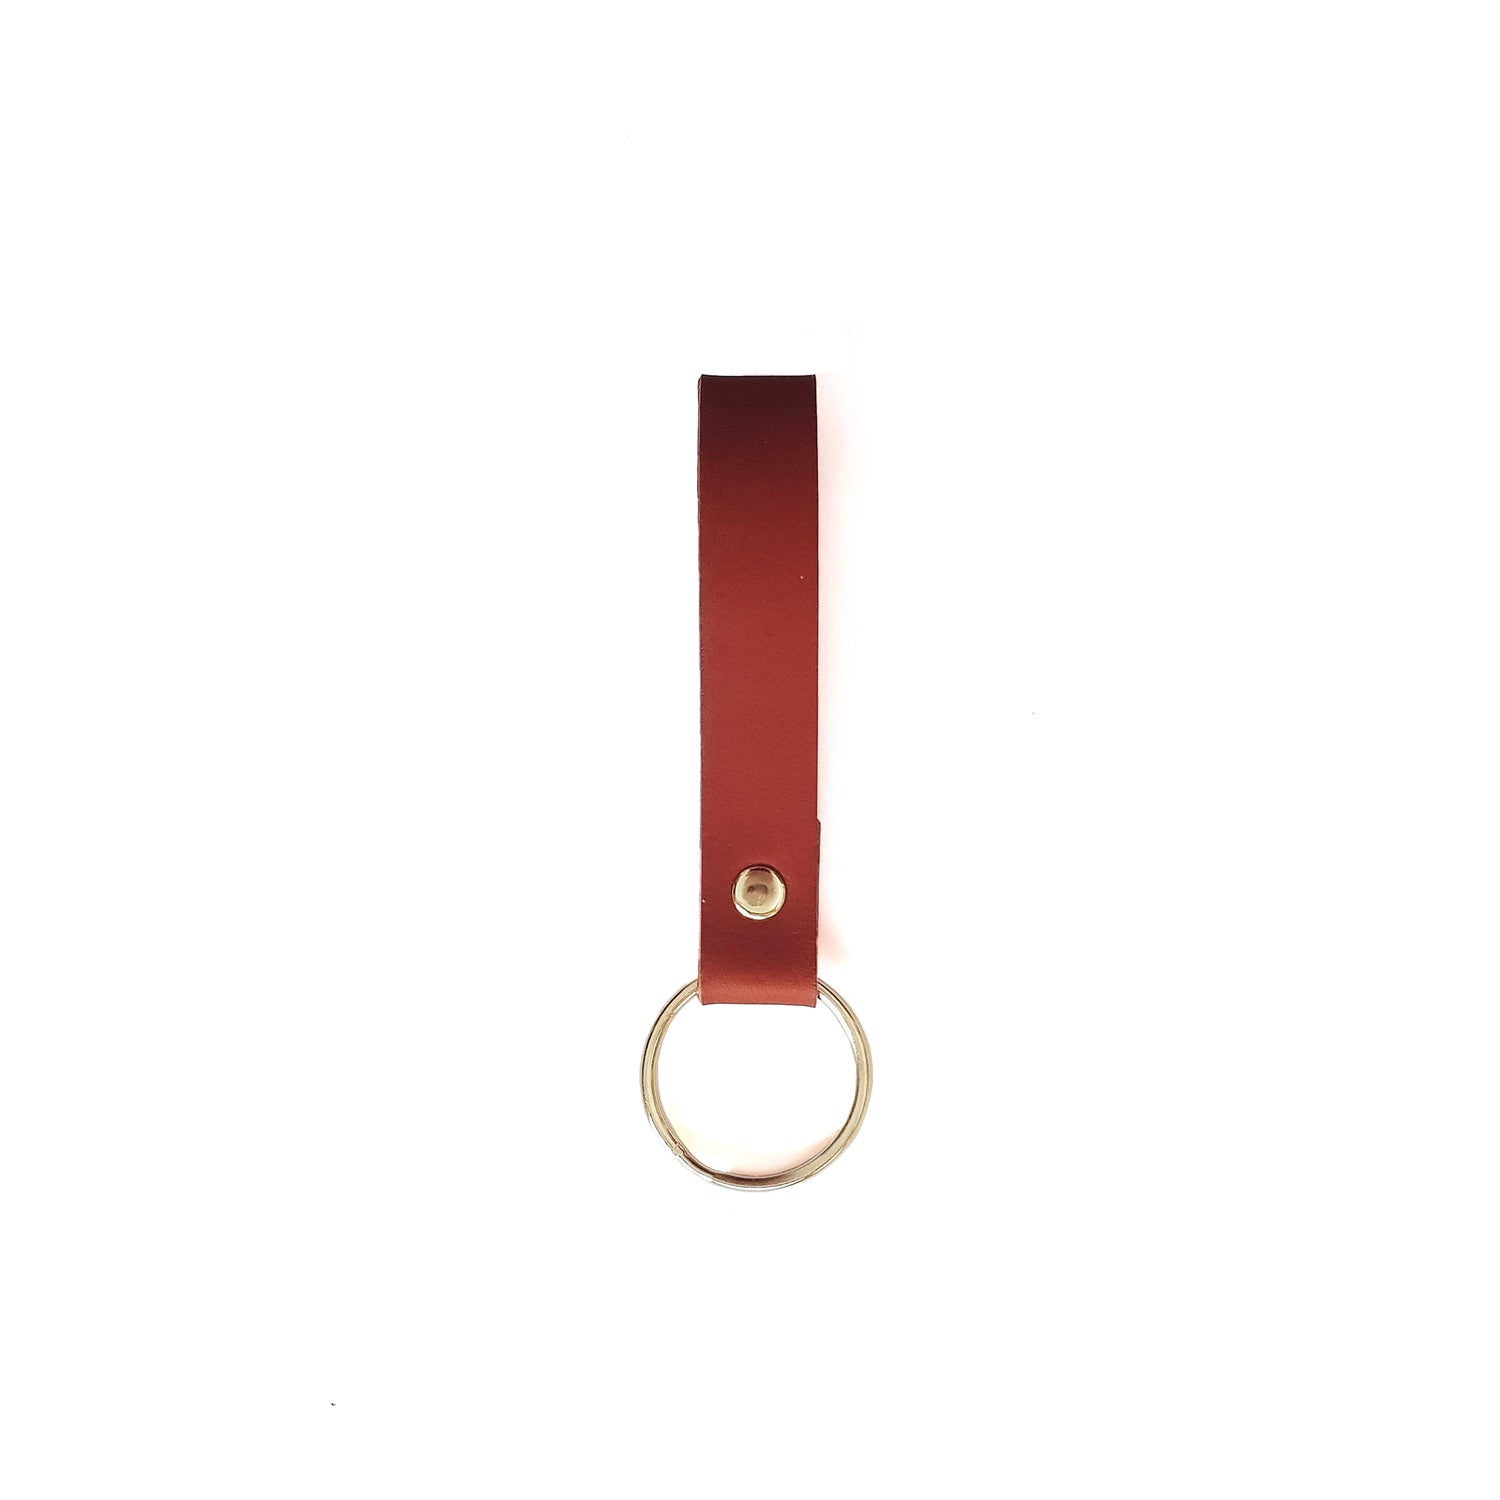 Keyring in Tan